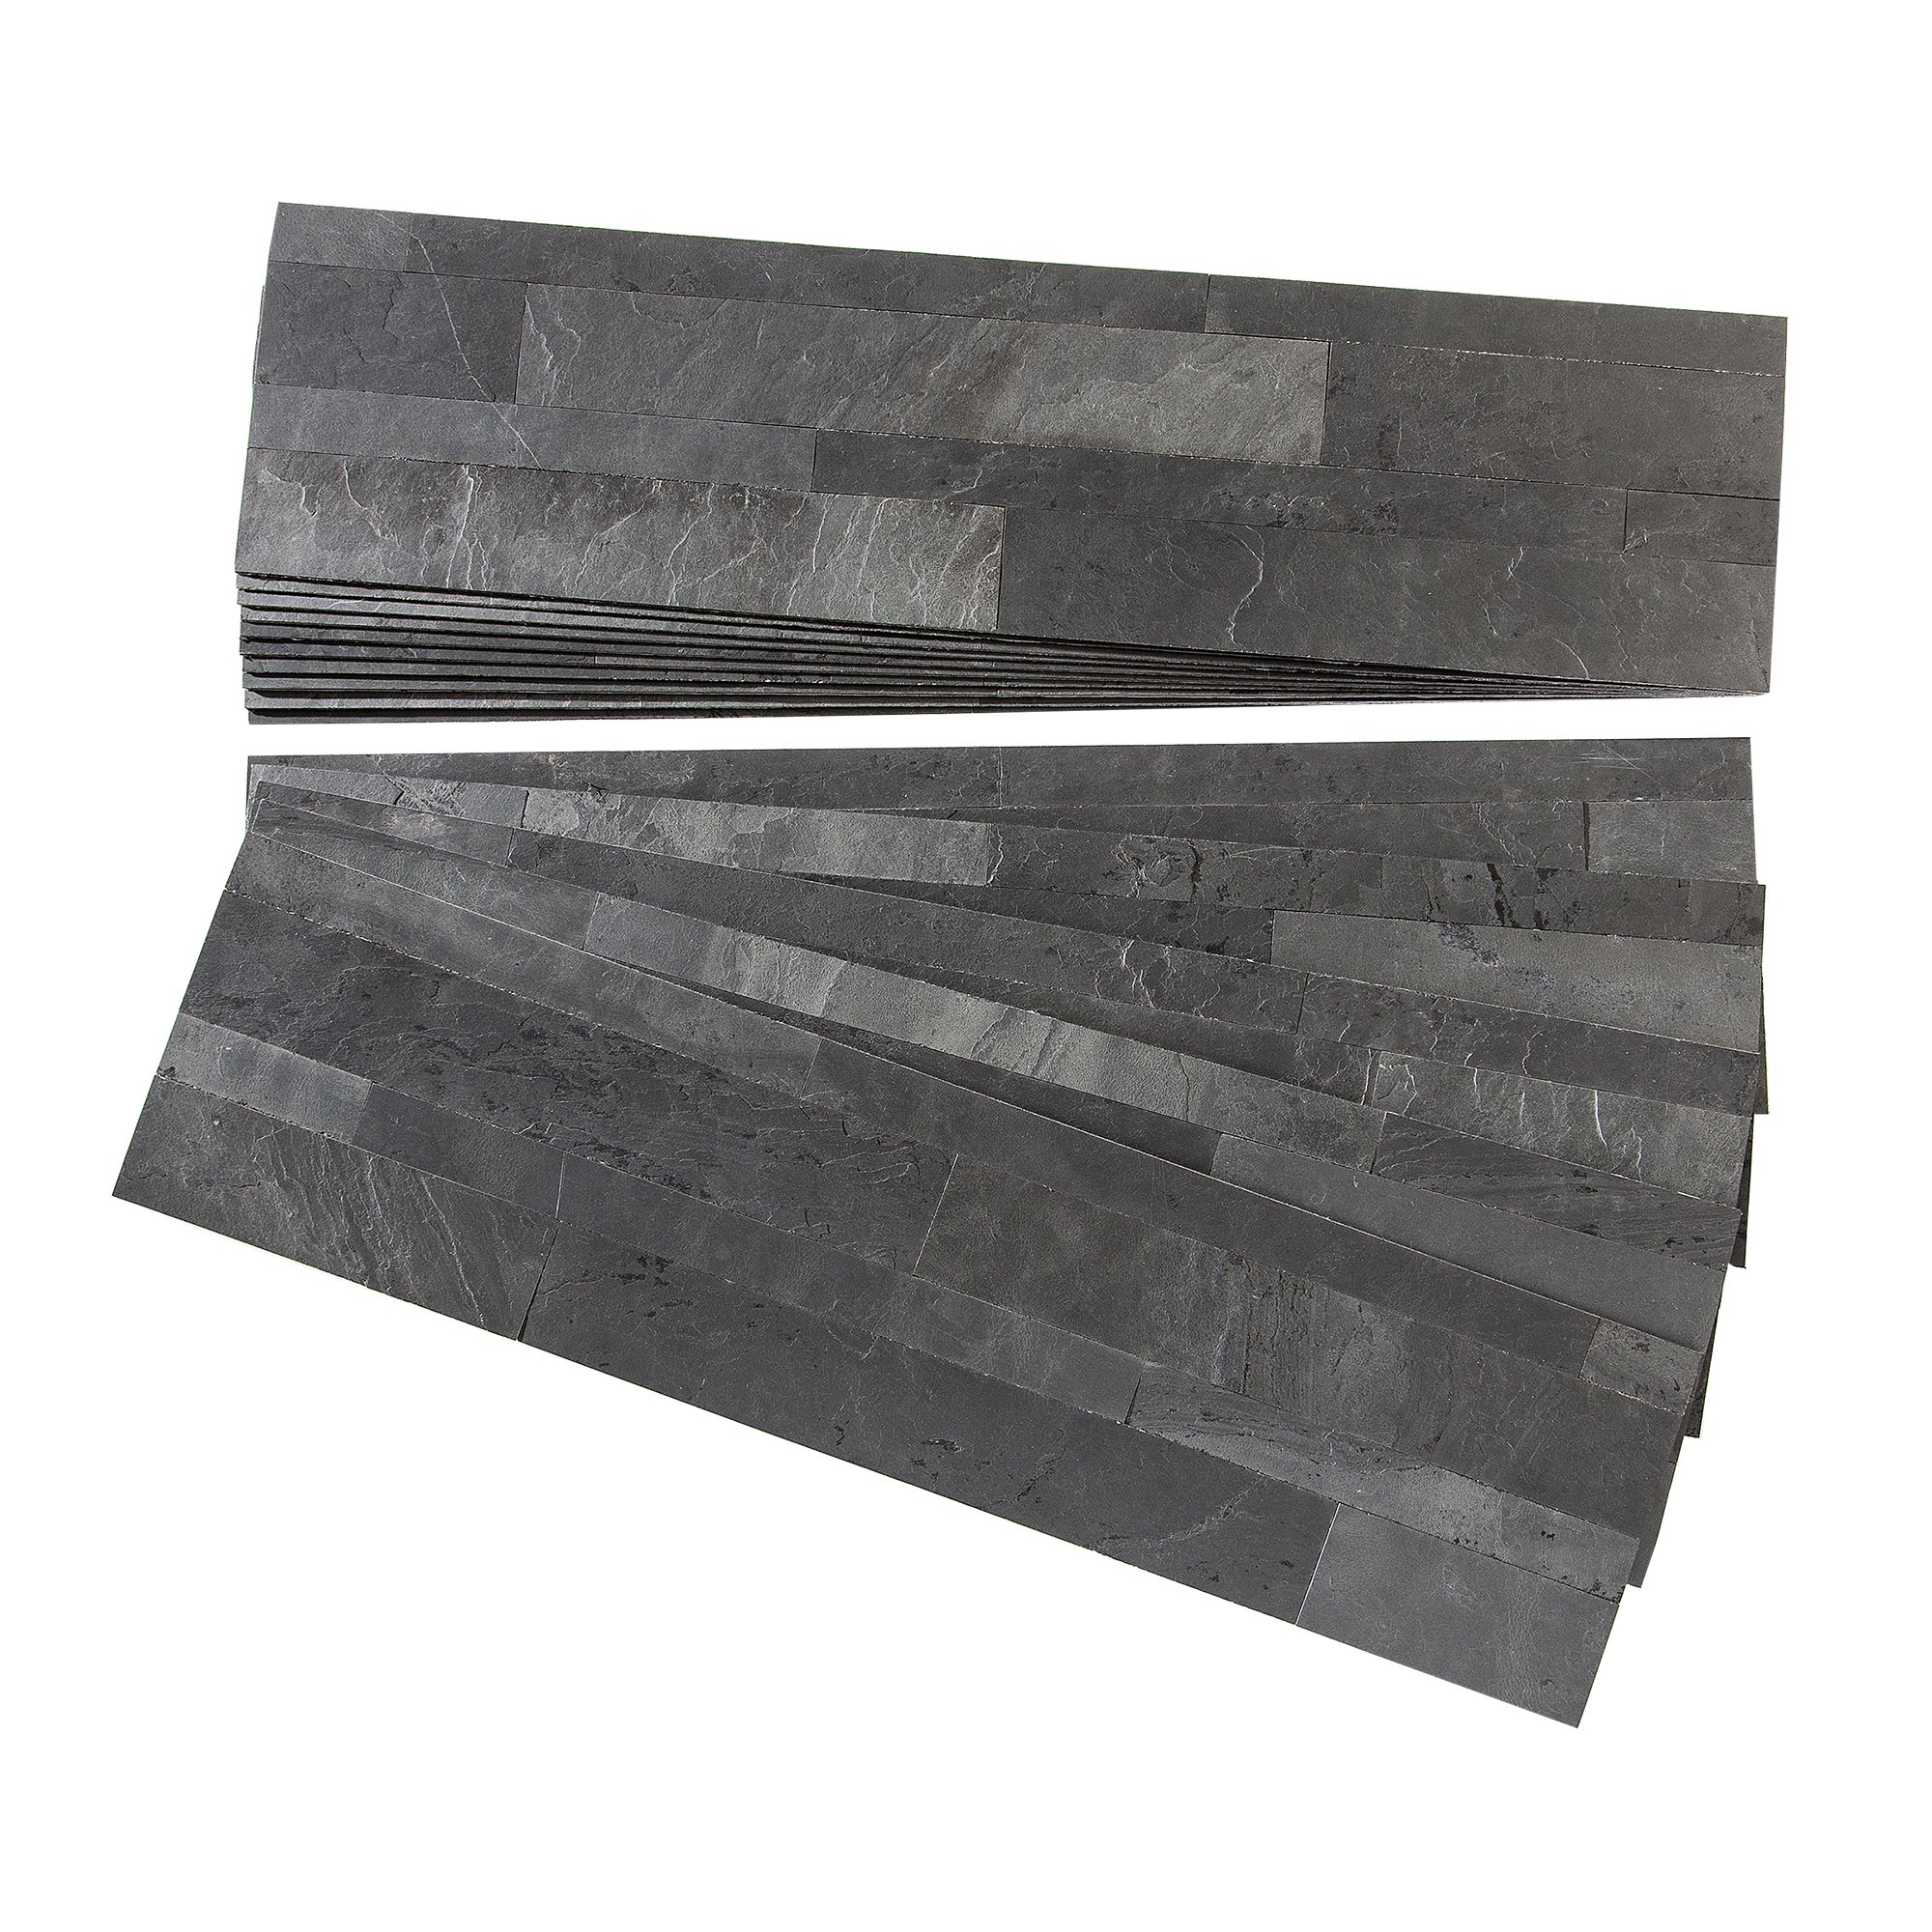 Aspect Peel and Stick Stone Overlay Kitchen Backsplash - Charcoal Slate (Approx. 15 sq ft Kit) - Easy DIY Tile Backsplash